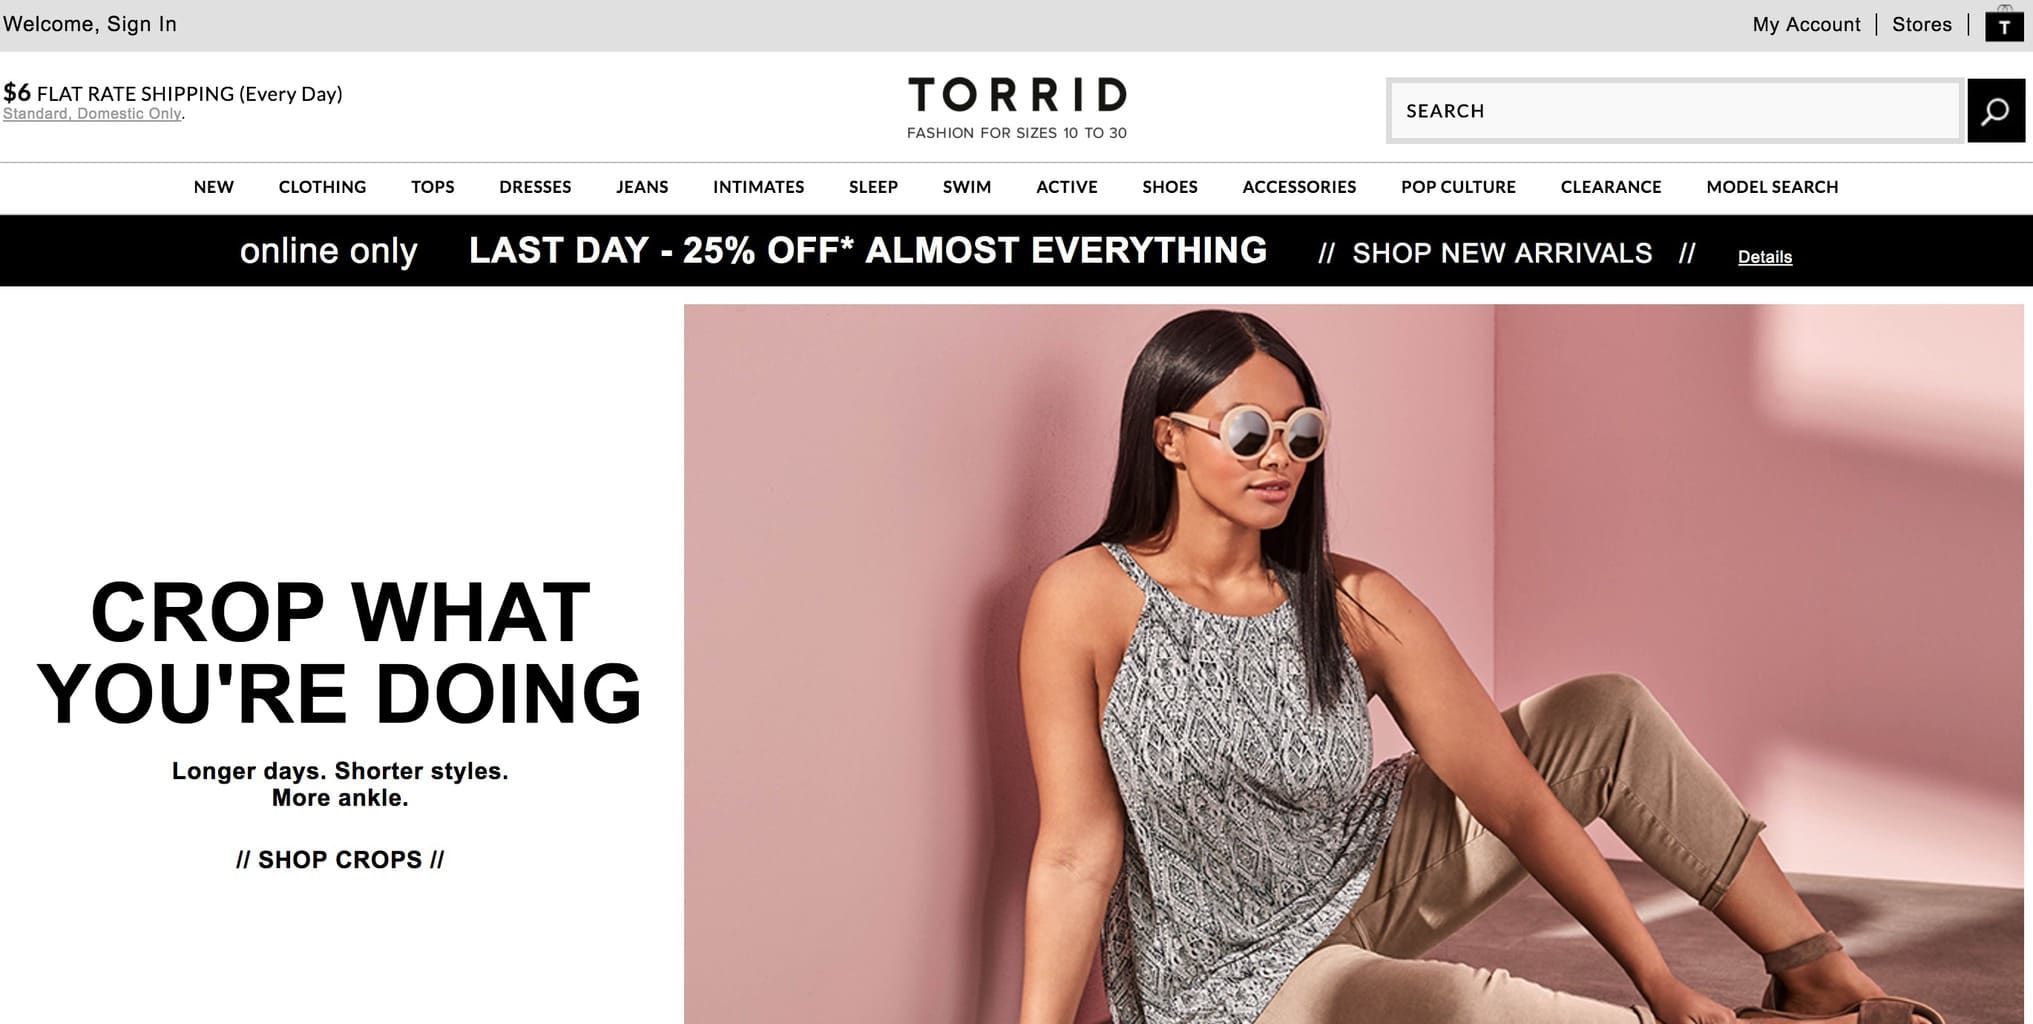 Best stores for fashion on a budget: Cheap shopping sites. Plus size fashion retailer Torrid is the best for inexpensive plus size clothes.